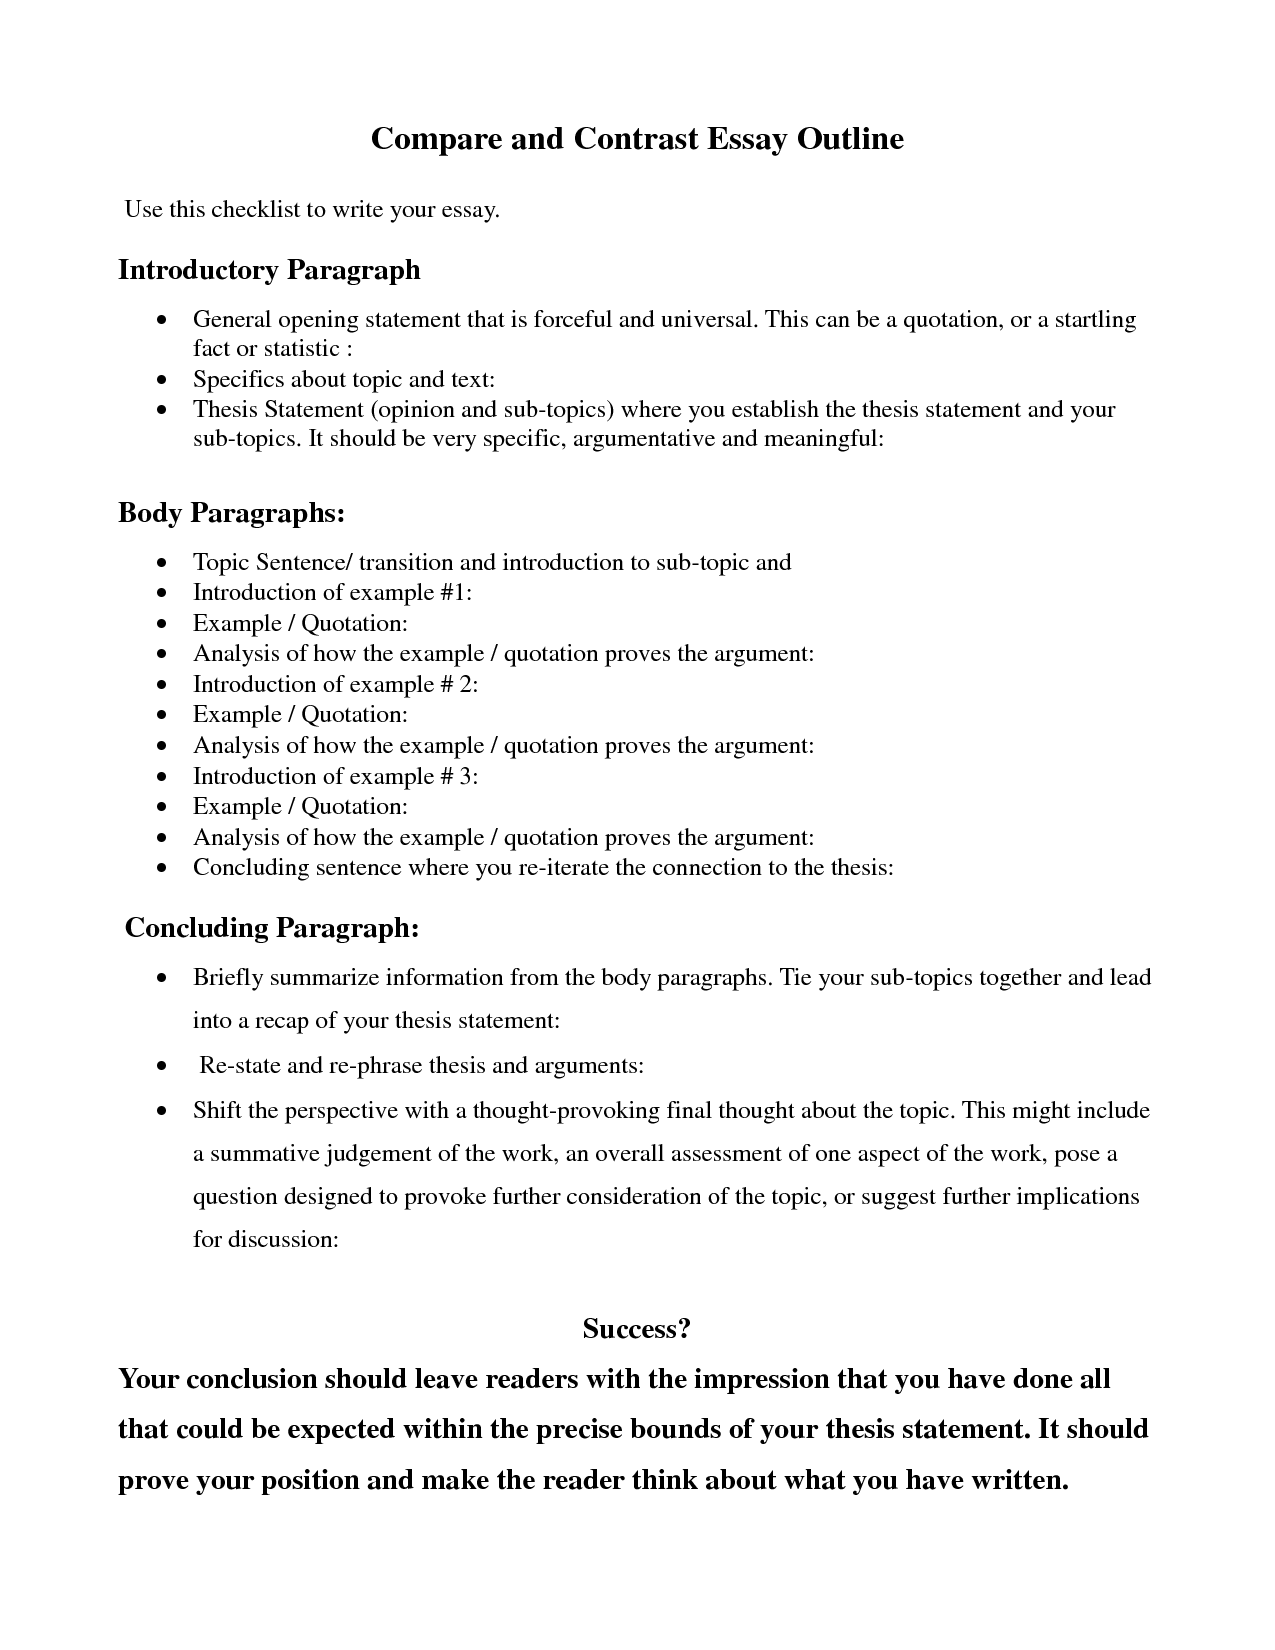 How To Make A Good Thesis Statement For An Essay Comparecontrast Essay Outline  Google Search Synthesis Essay also Hamlet Essay Thesis Comparecontrast Essay Outline  Google Search  Education  Thesis Statement In Essay